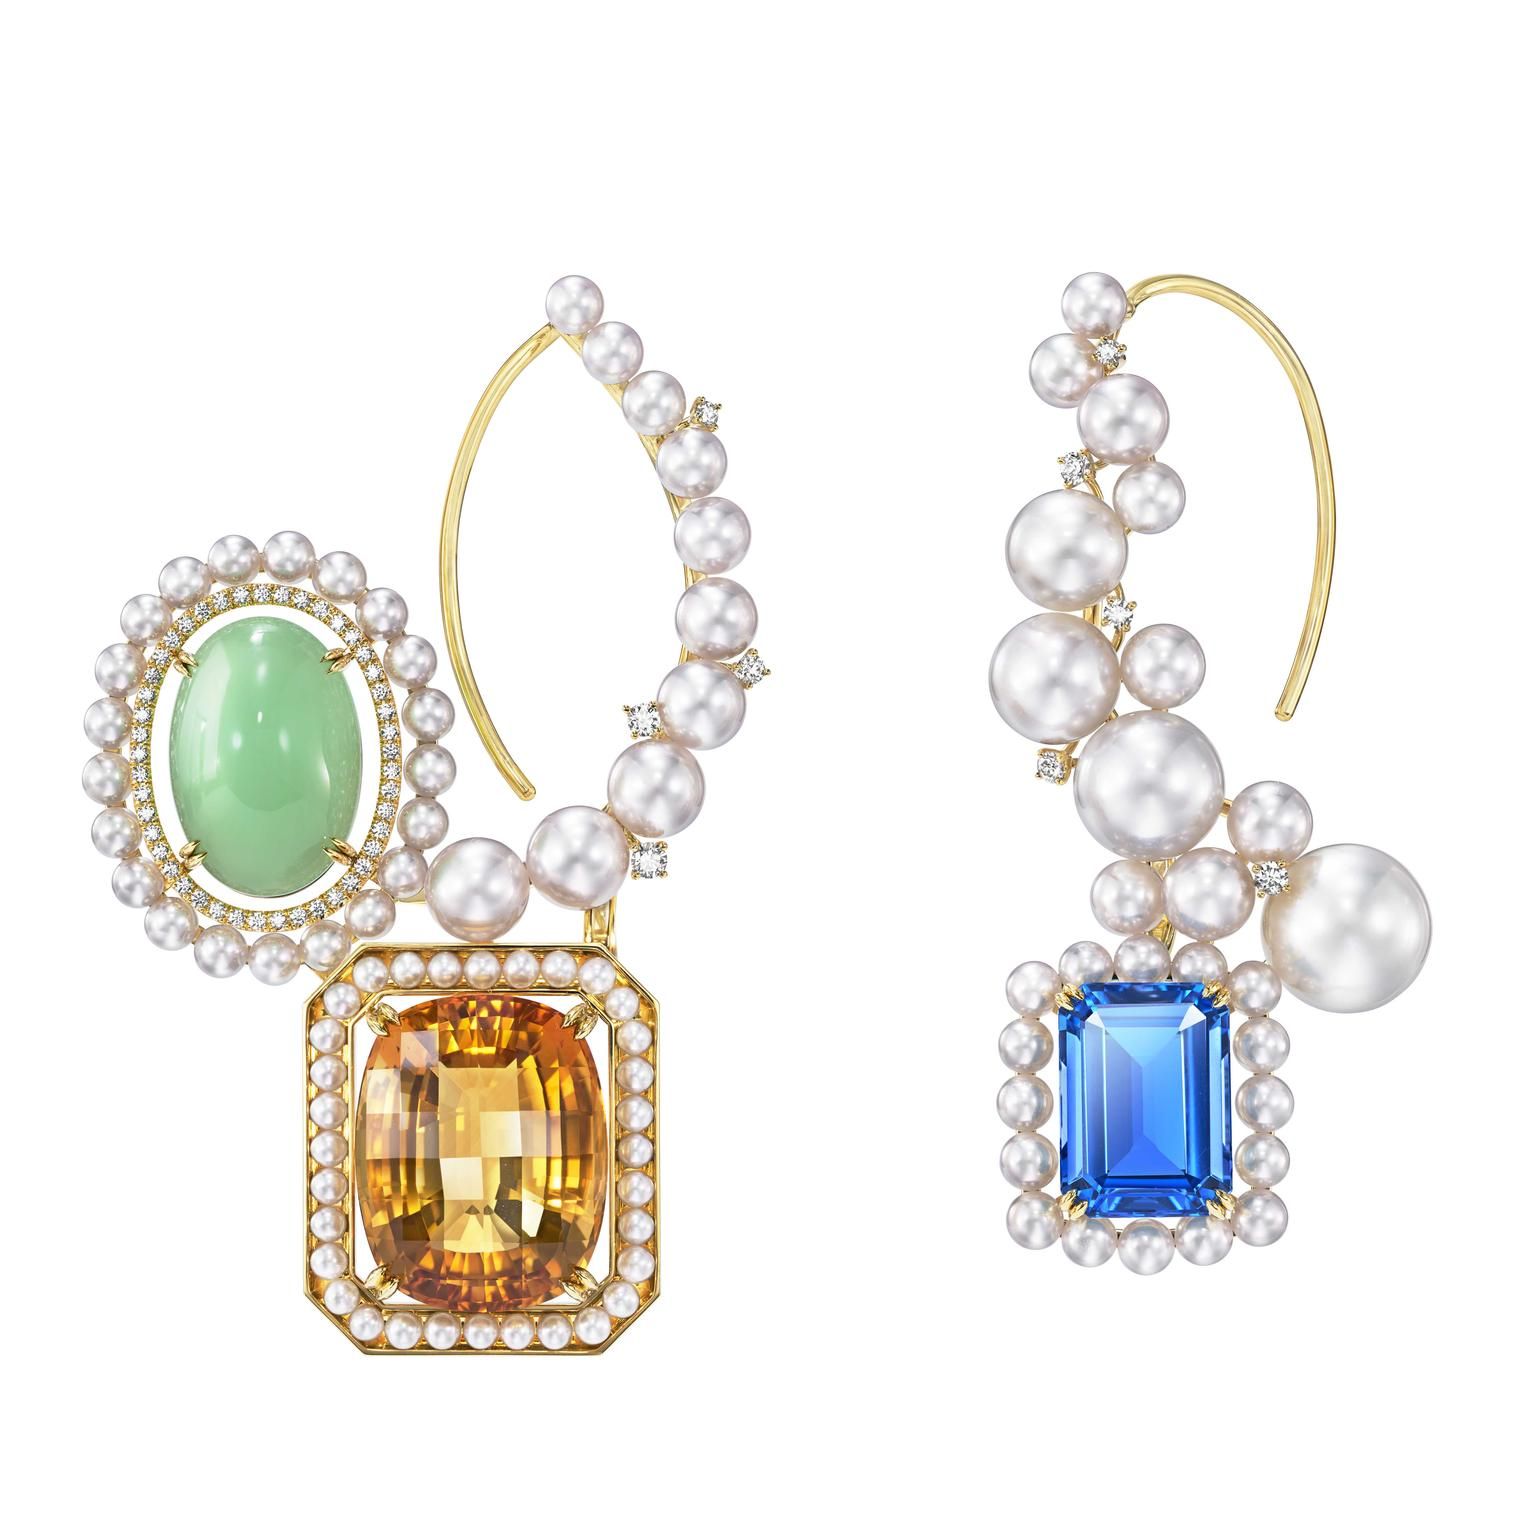 Ore earrings by Tasaki